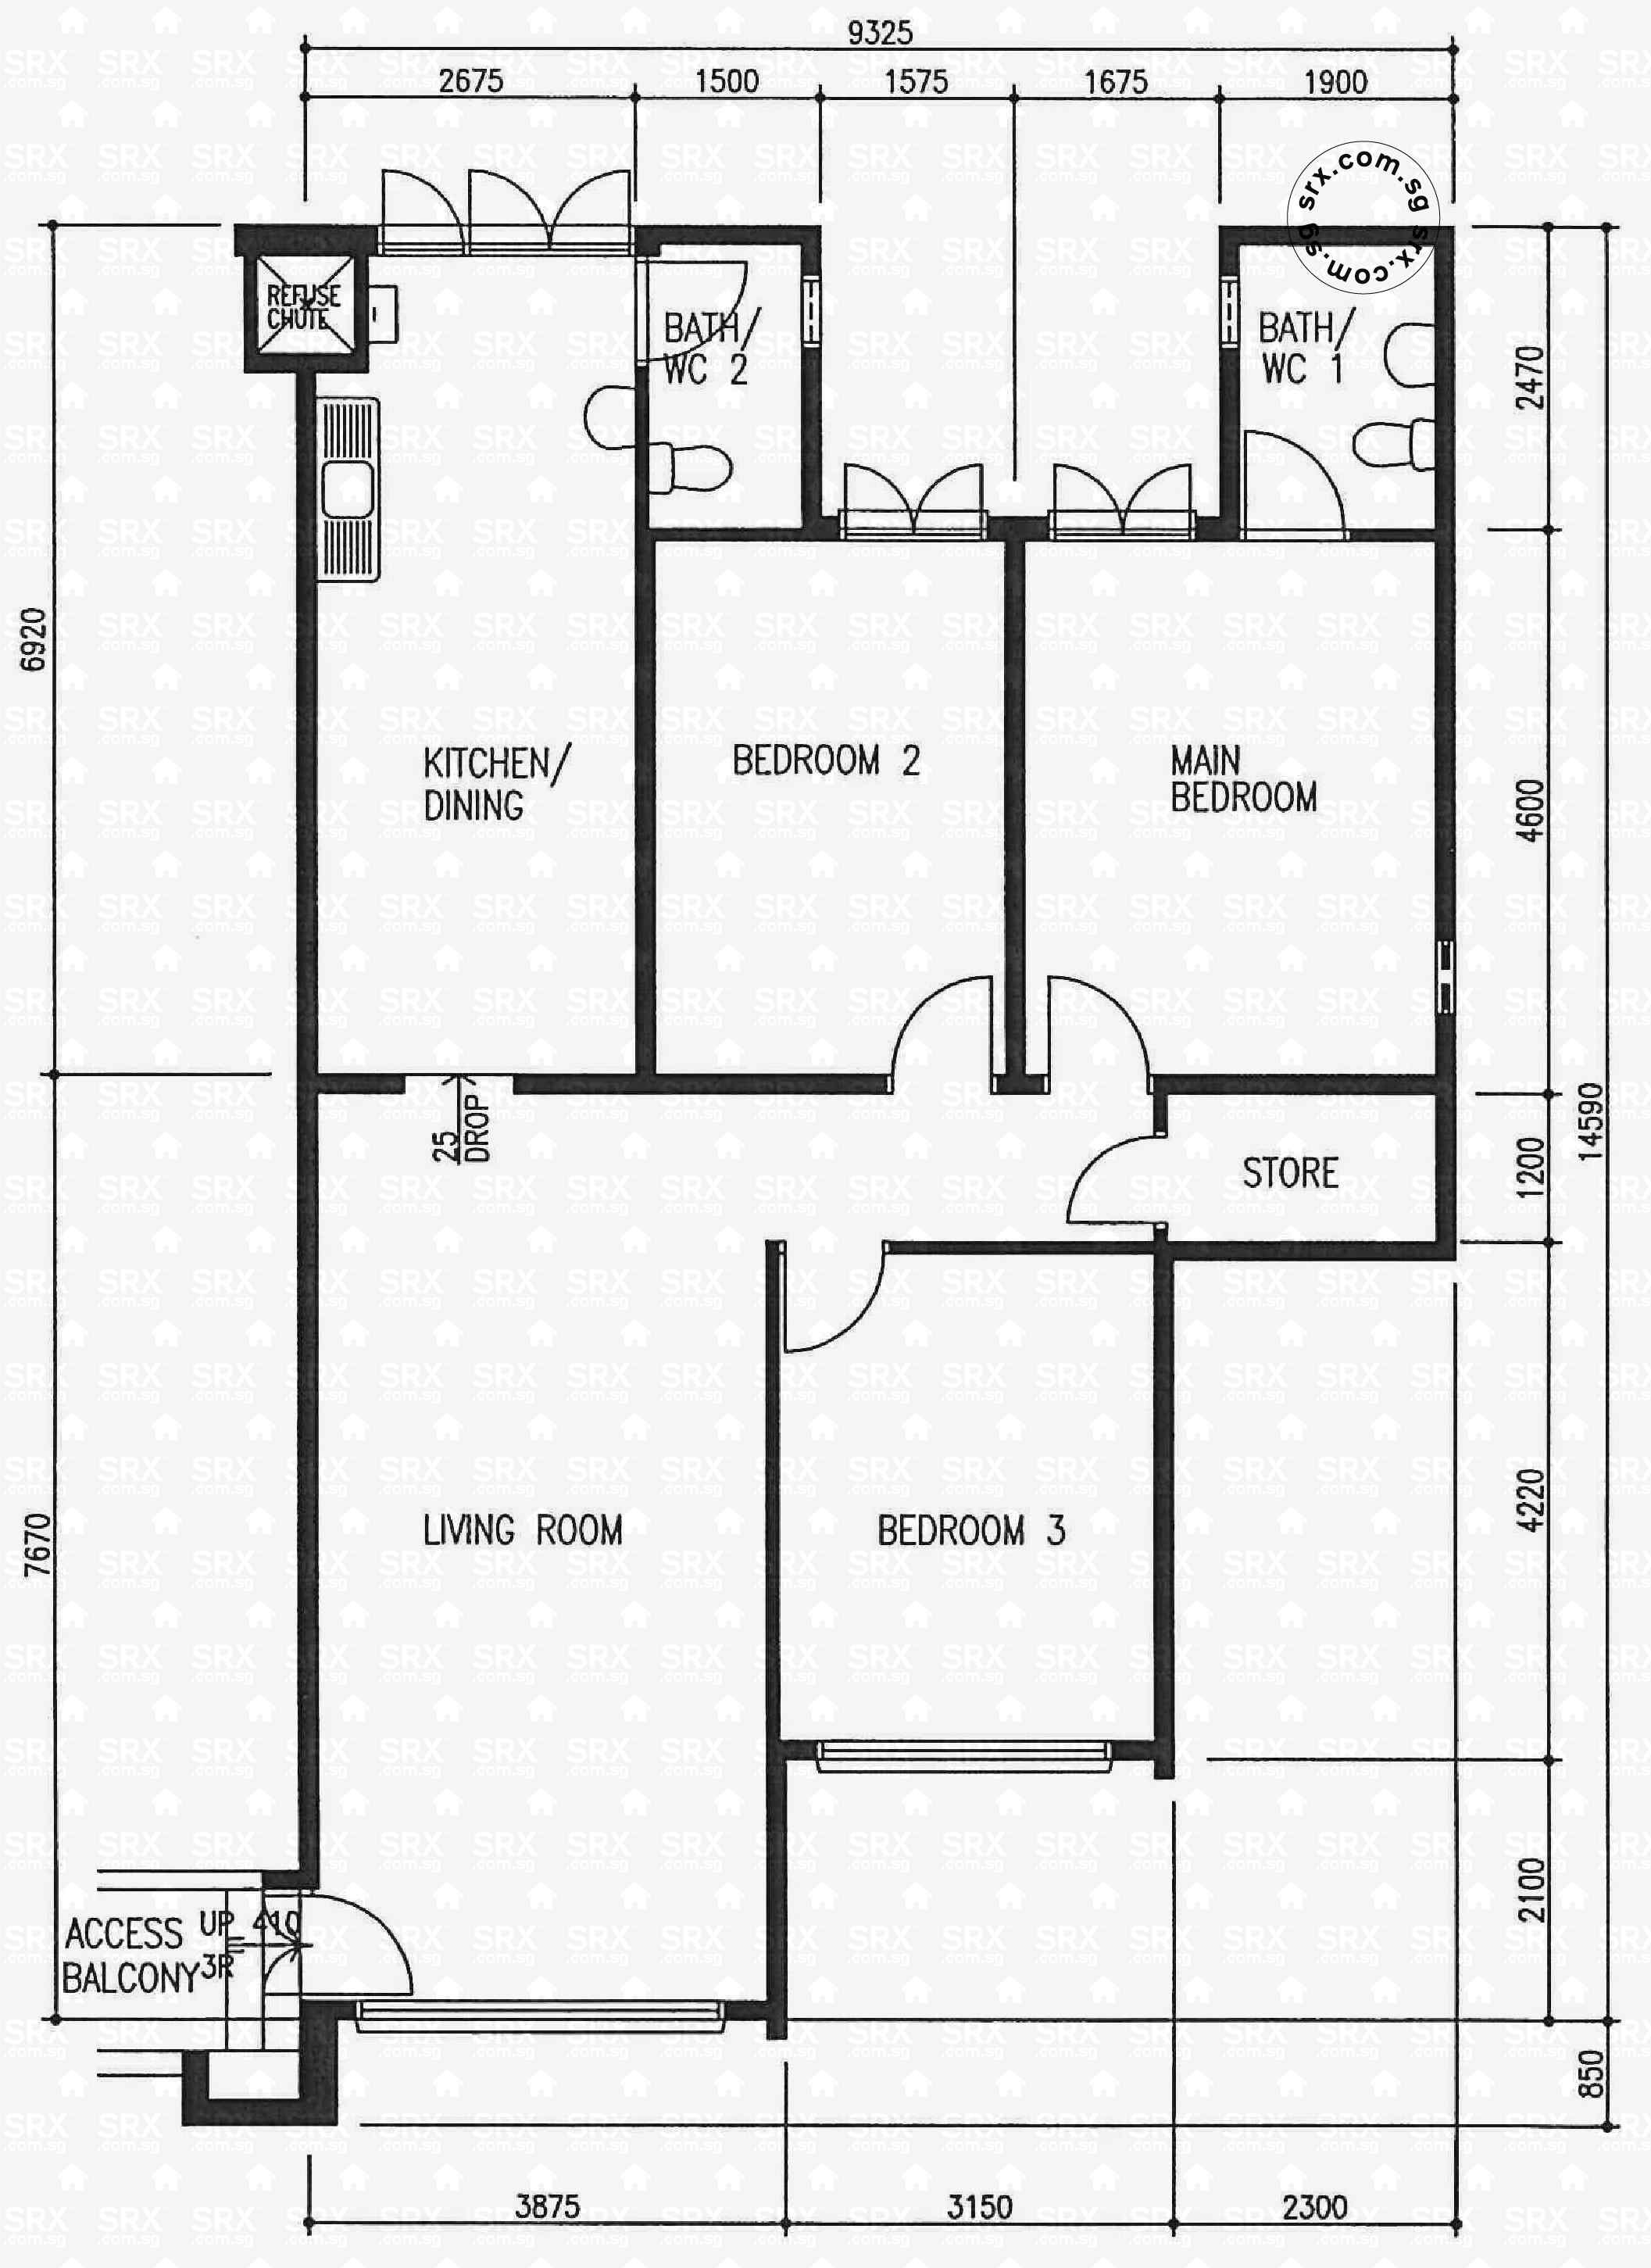 221 pending road s 670221 hdb details srx property for 221 armstrong floor plans